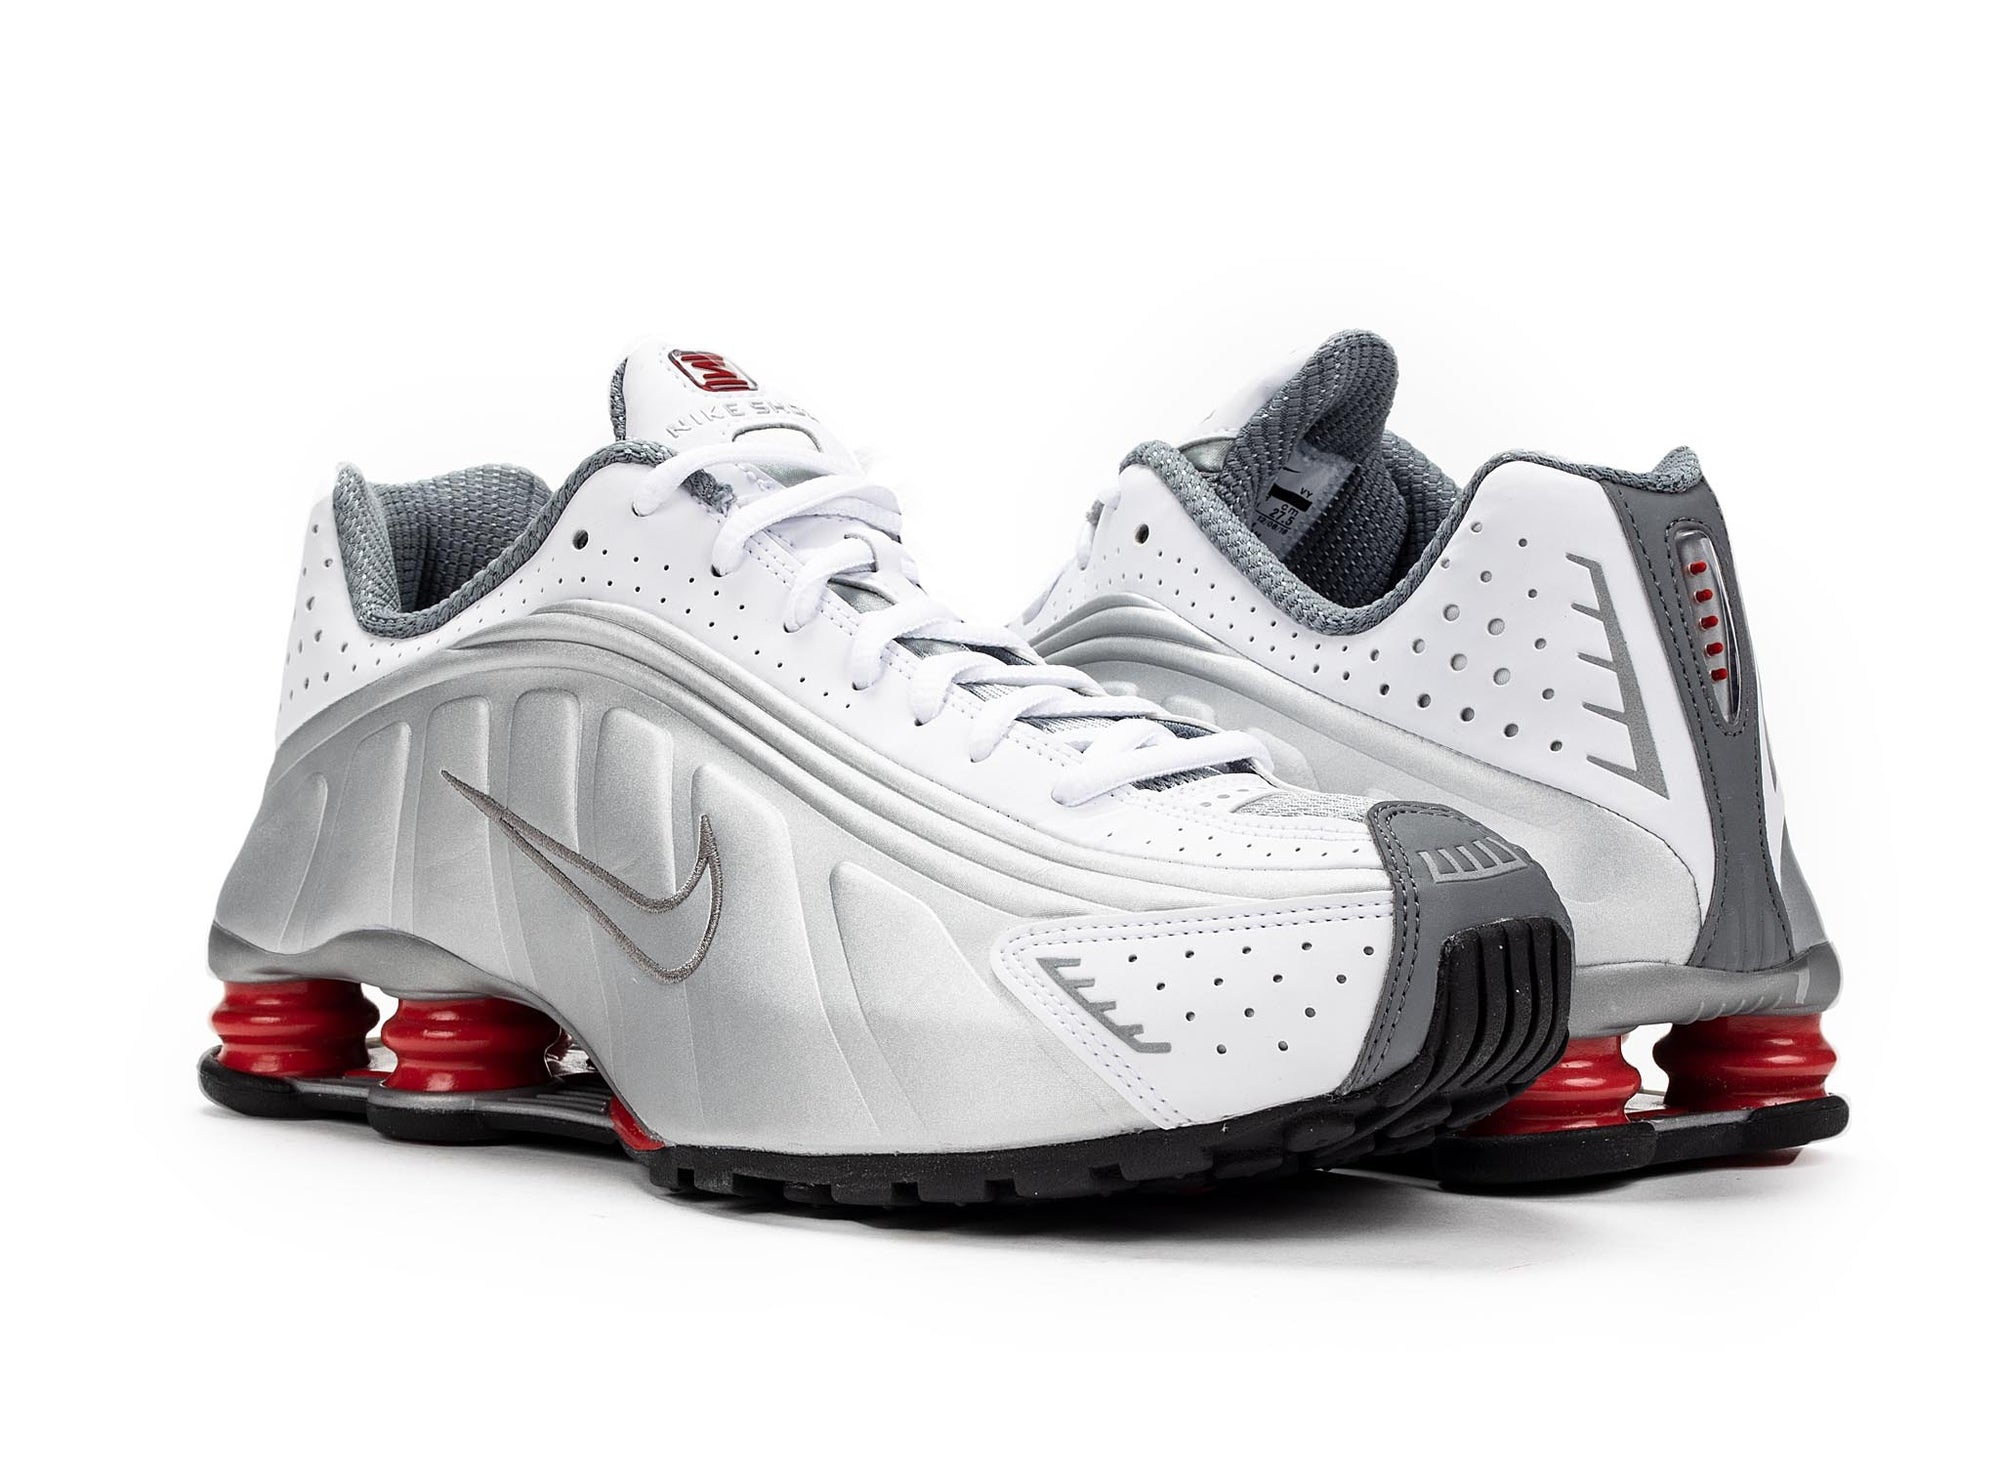 new styles 65306 f2af6 Nike Shox R4 - White Silver